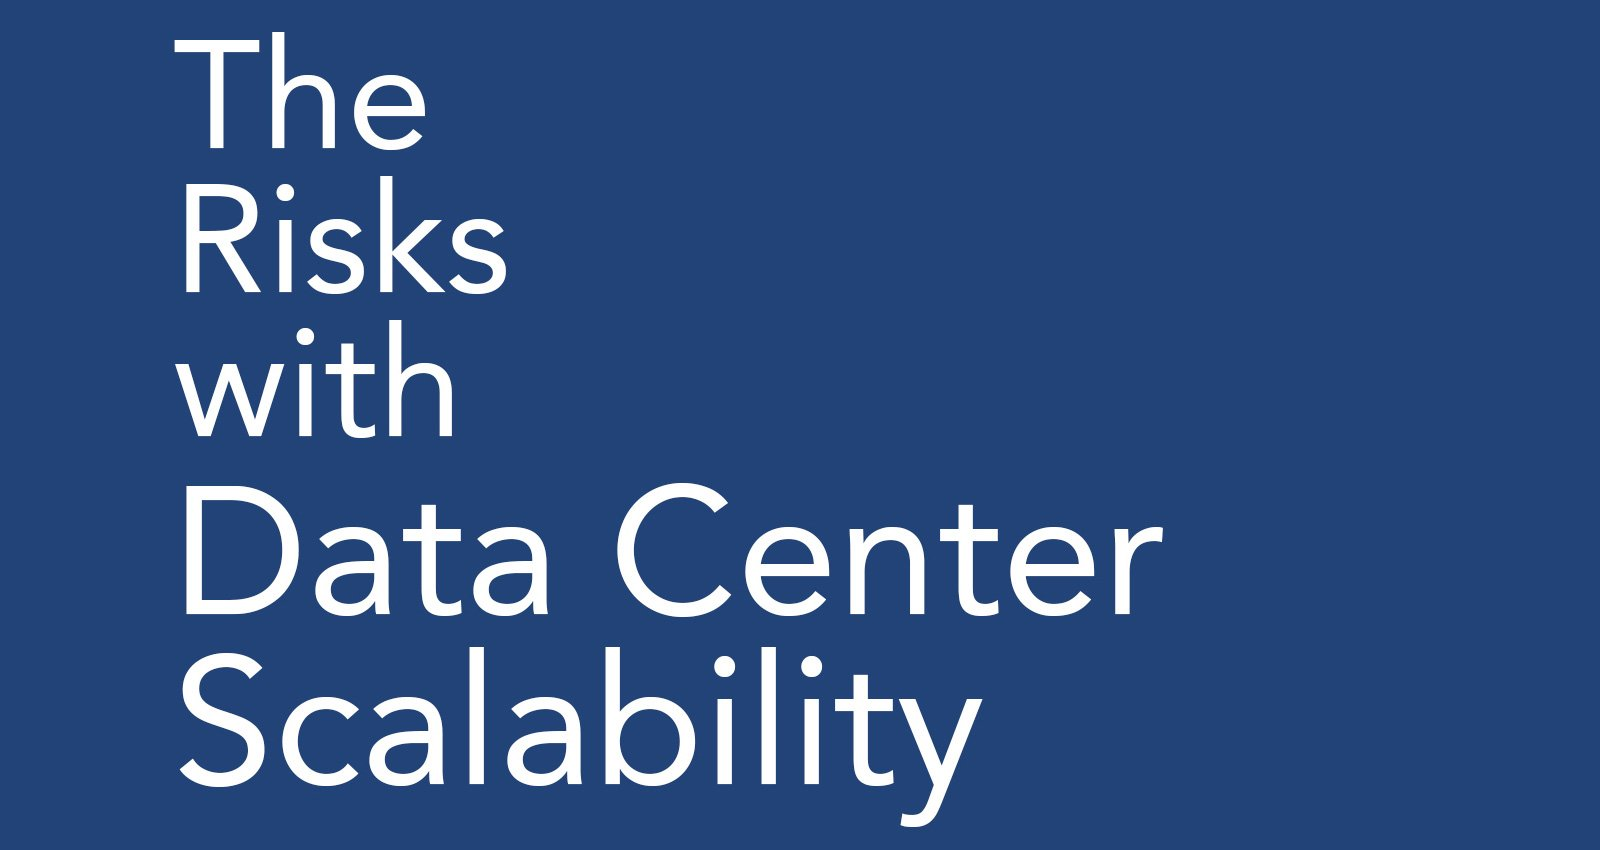 The Risks with Data Center Scalability